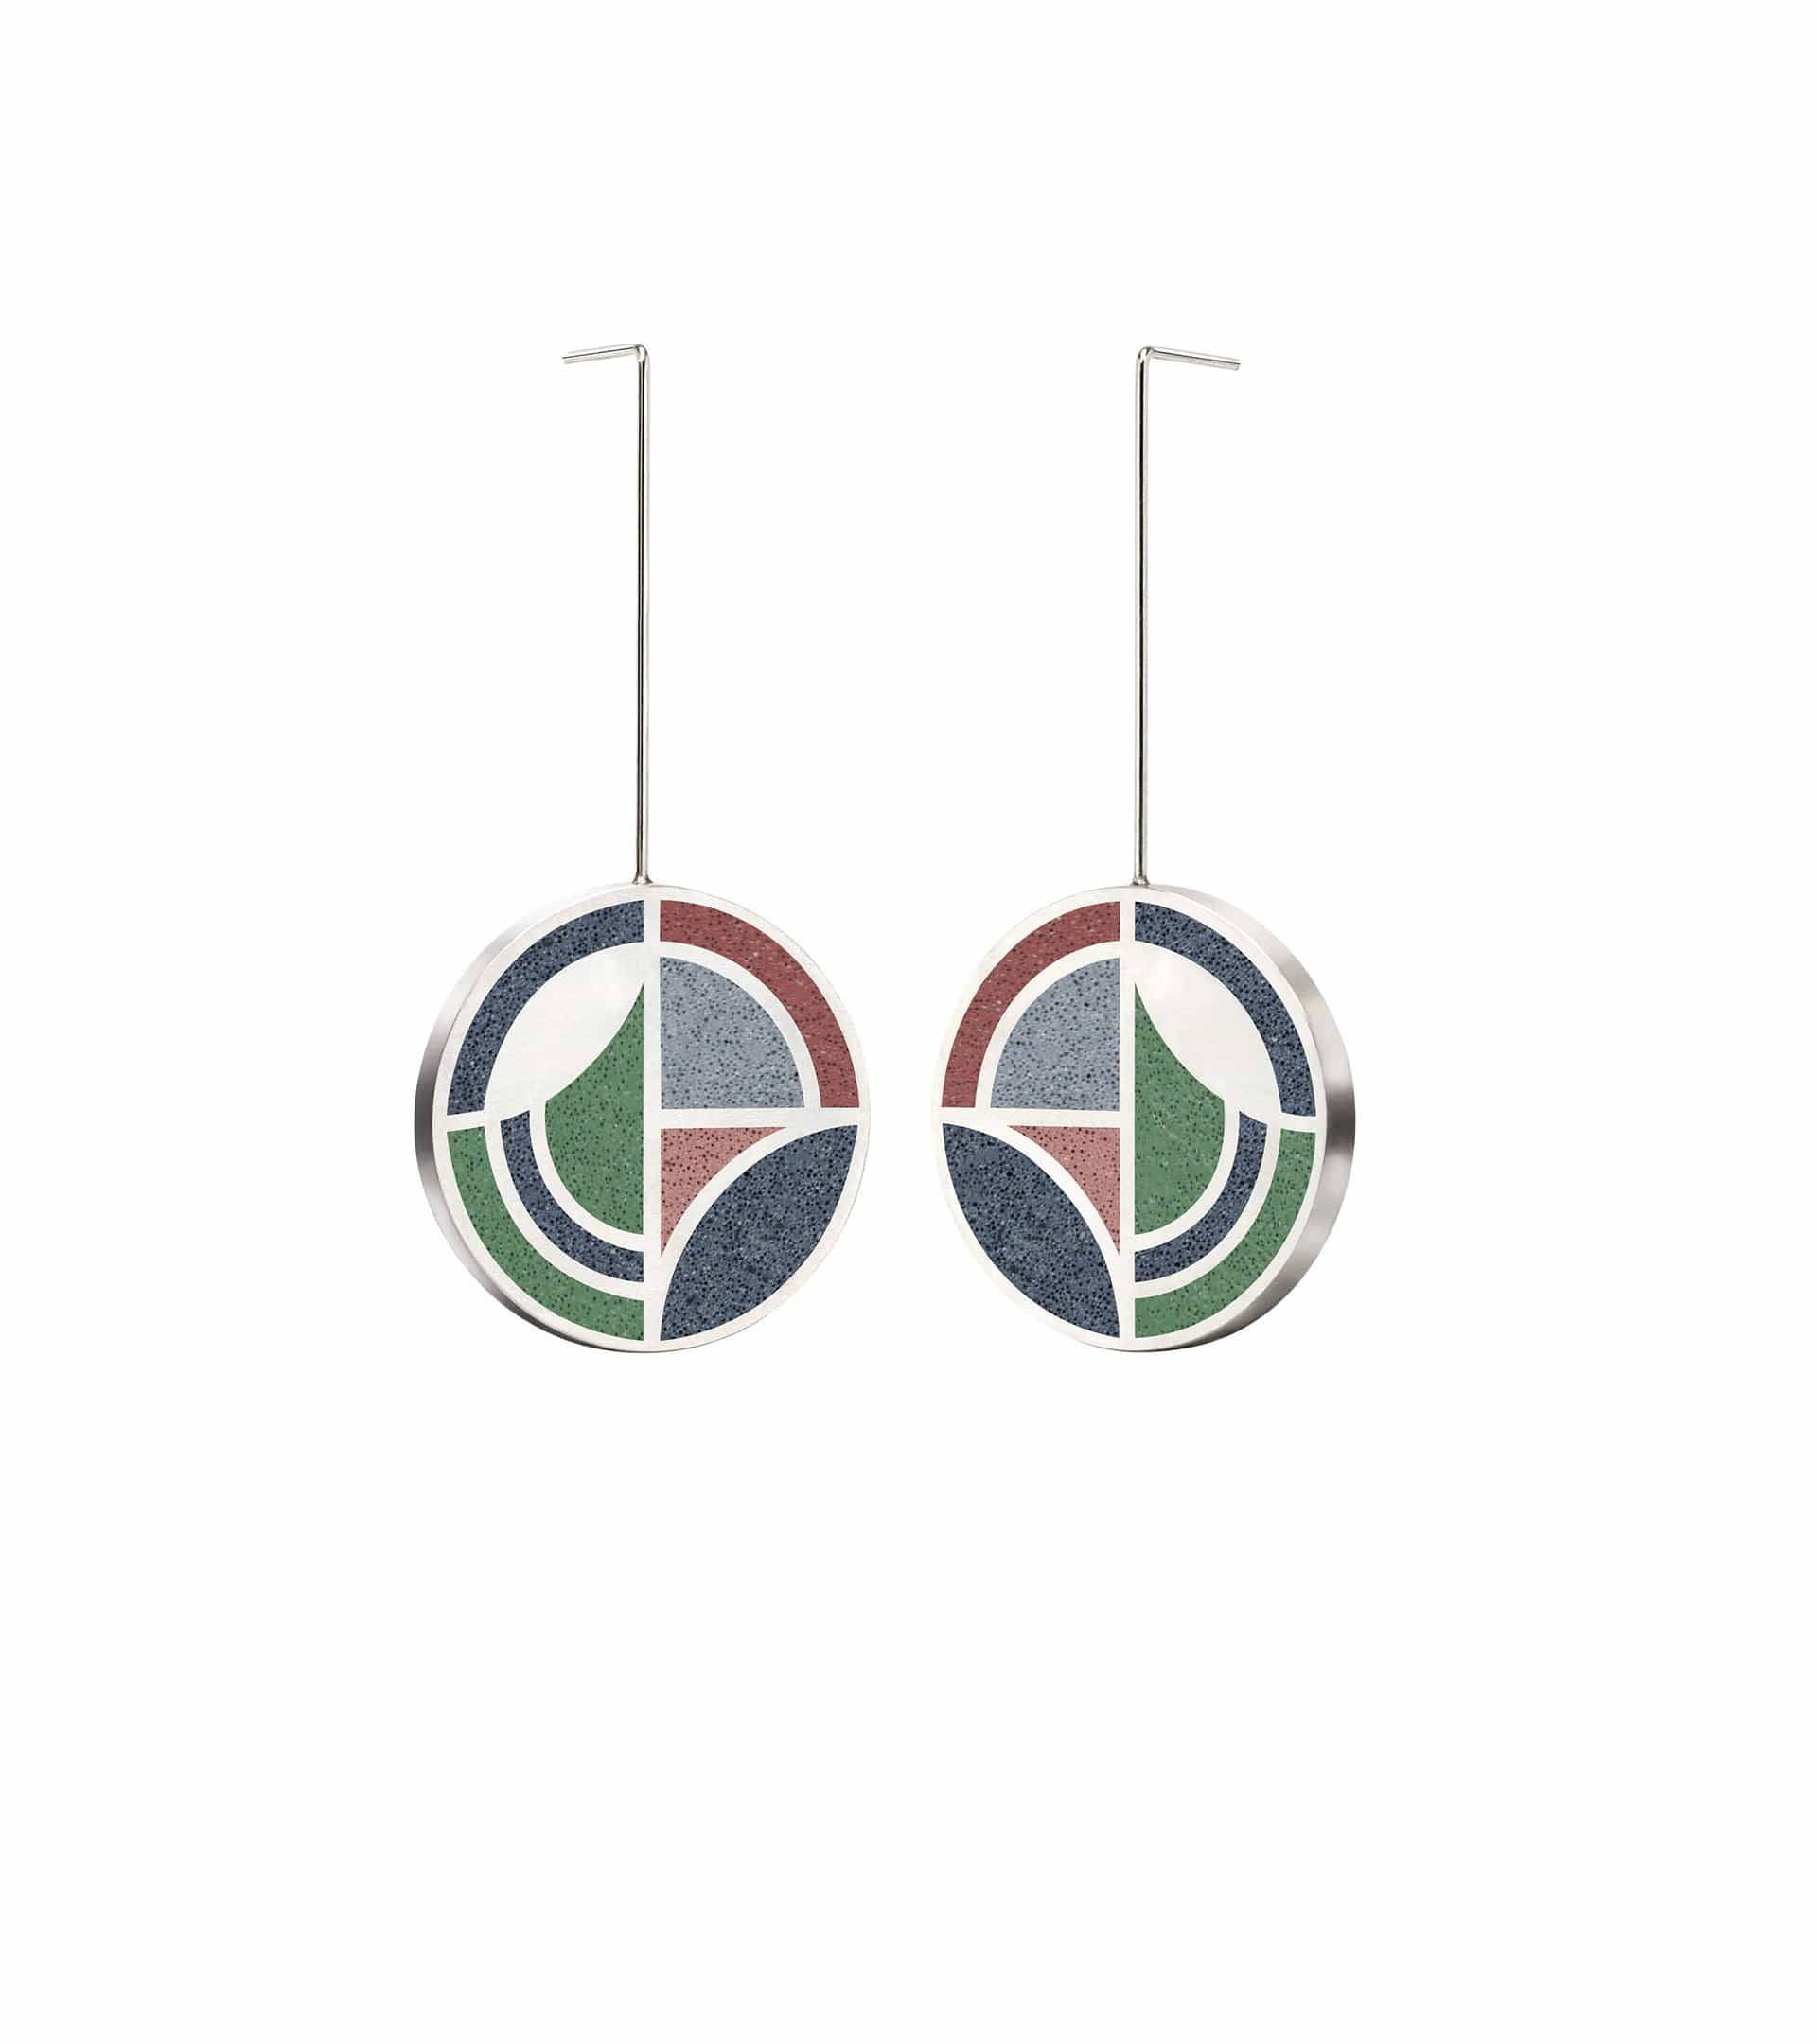 Konzuk Earrings Saguaro - Concrete Earring Drops 1